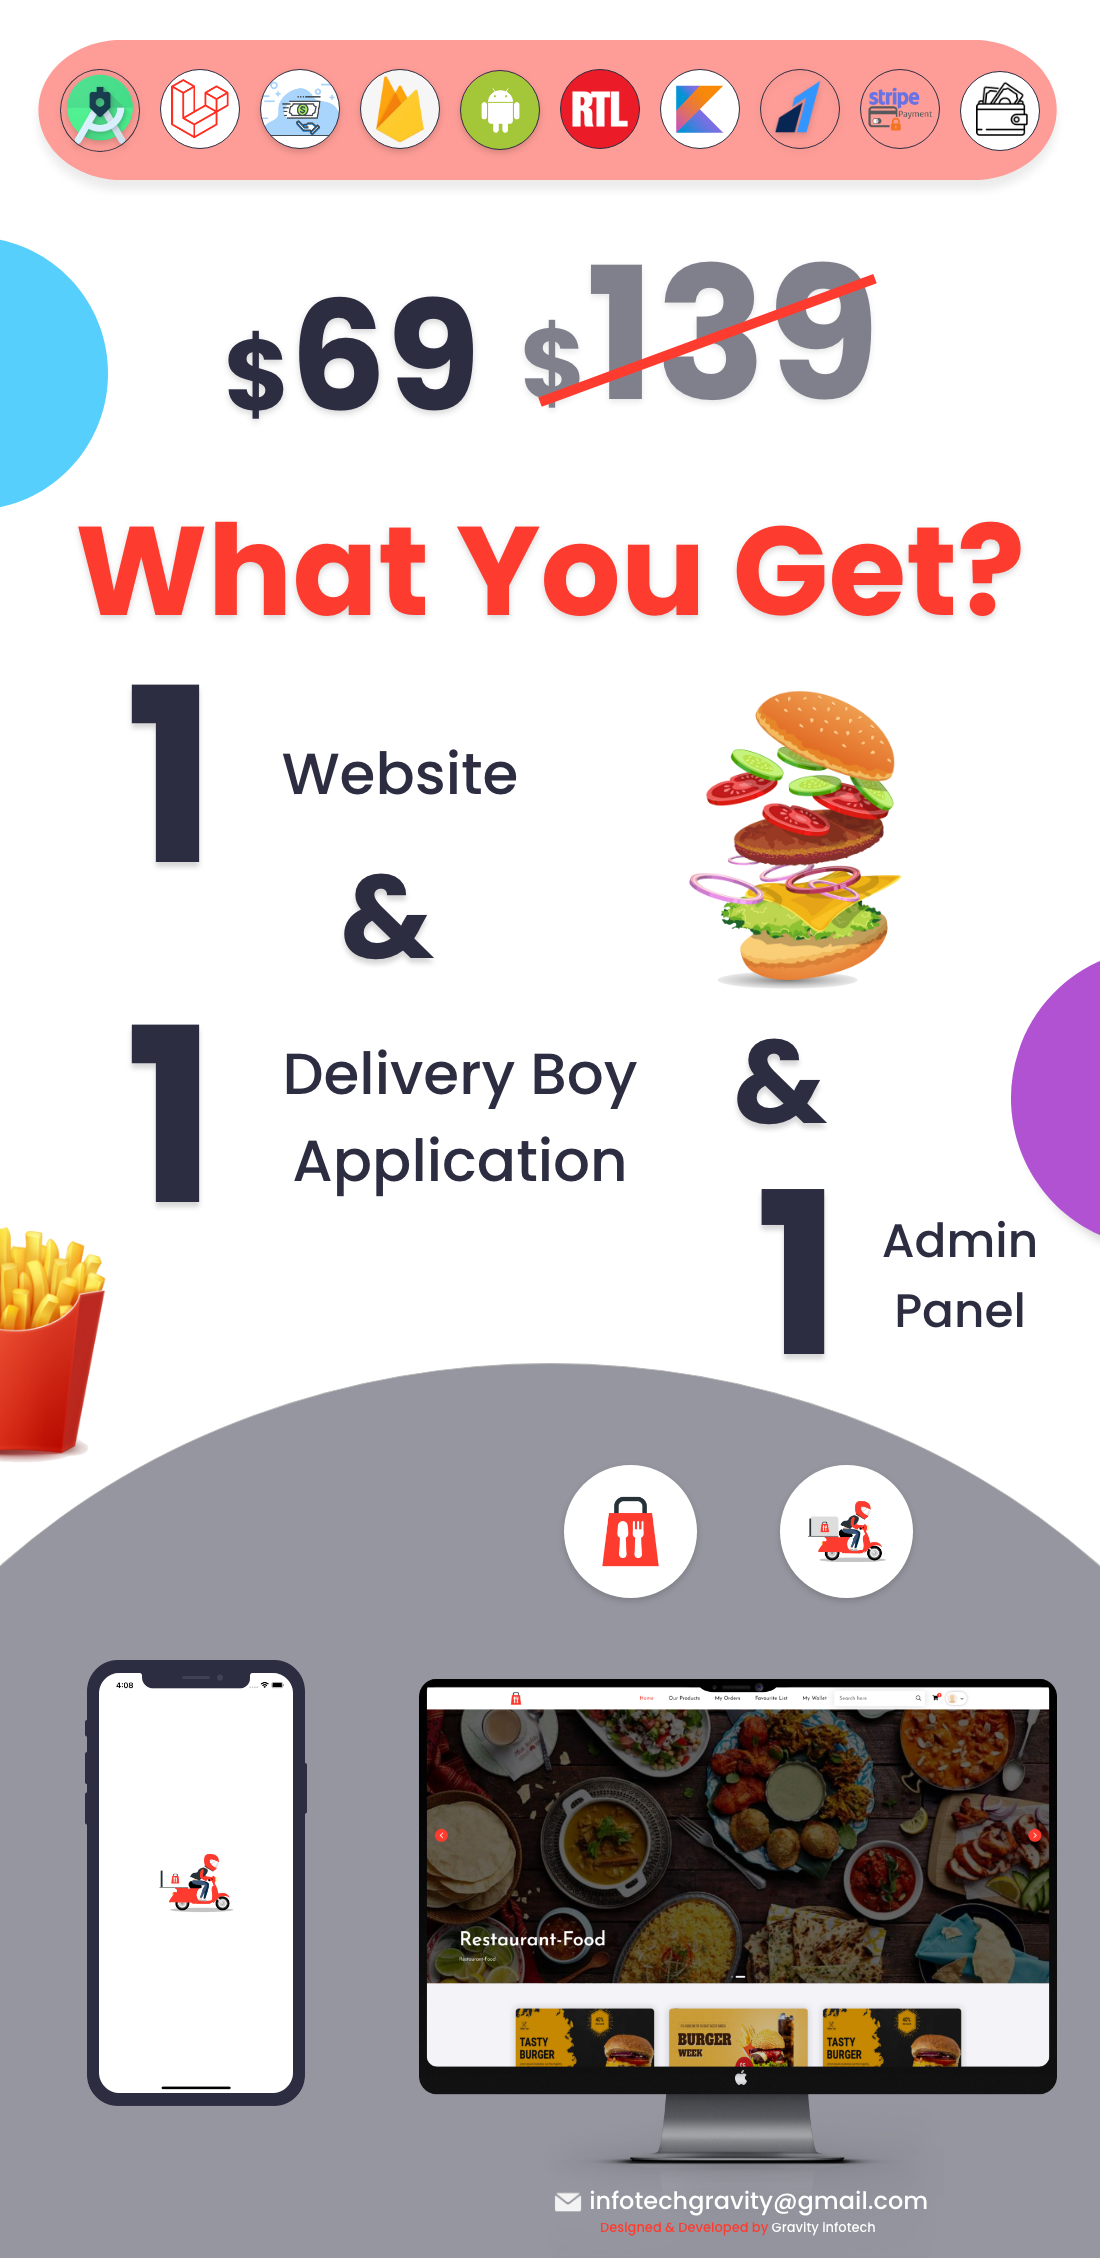 Single restaurant food ordering Website and Delivery Boy App with Admin Panel - 3